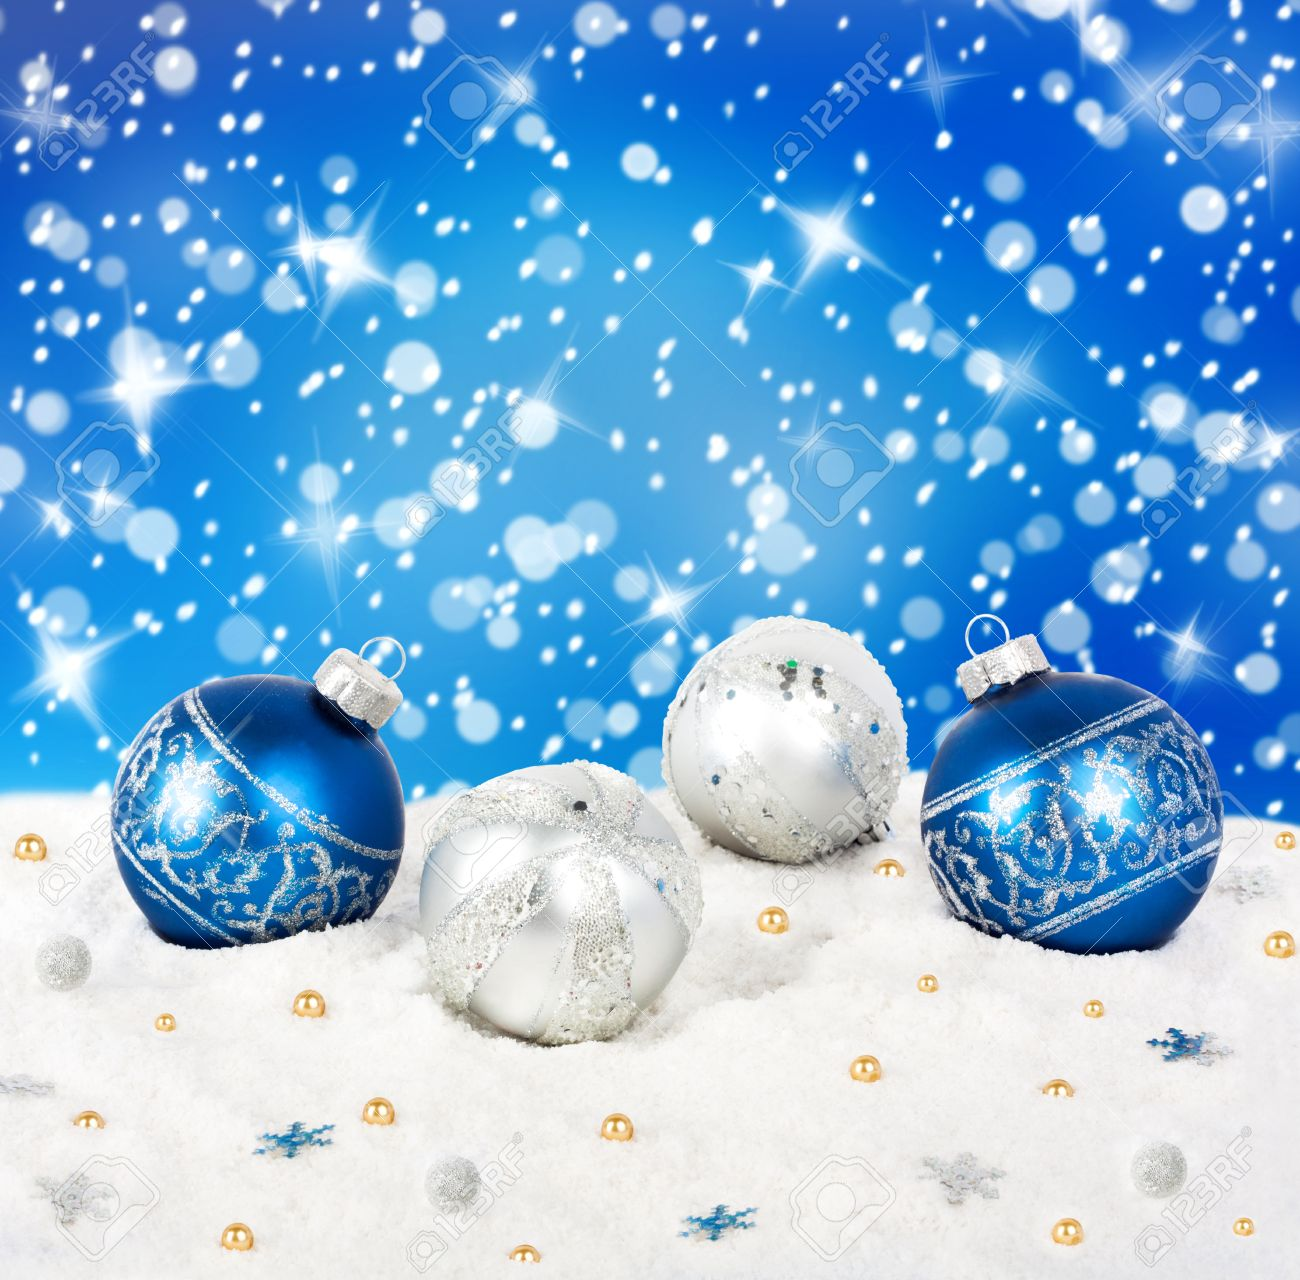 Blue and silver Christmas balls on snow background with stars